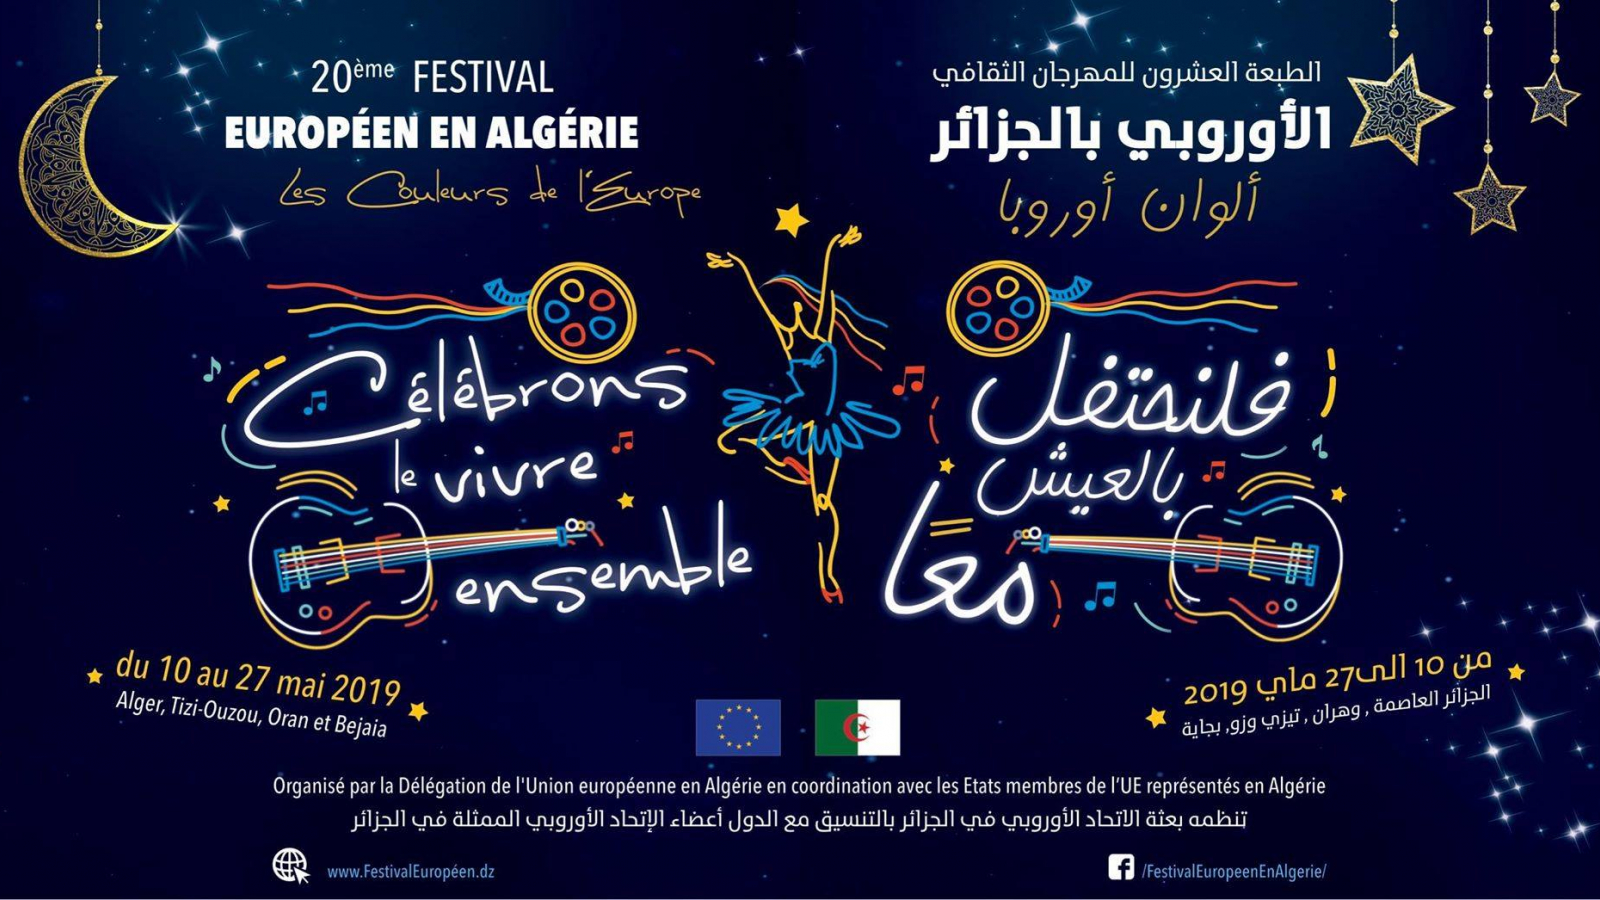 European Festival in Algeria to celebrate togetherness